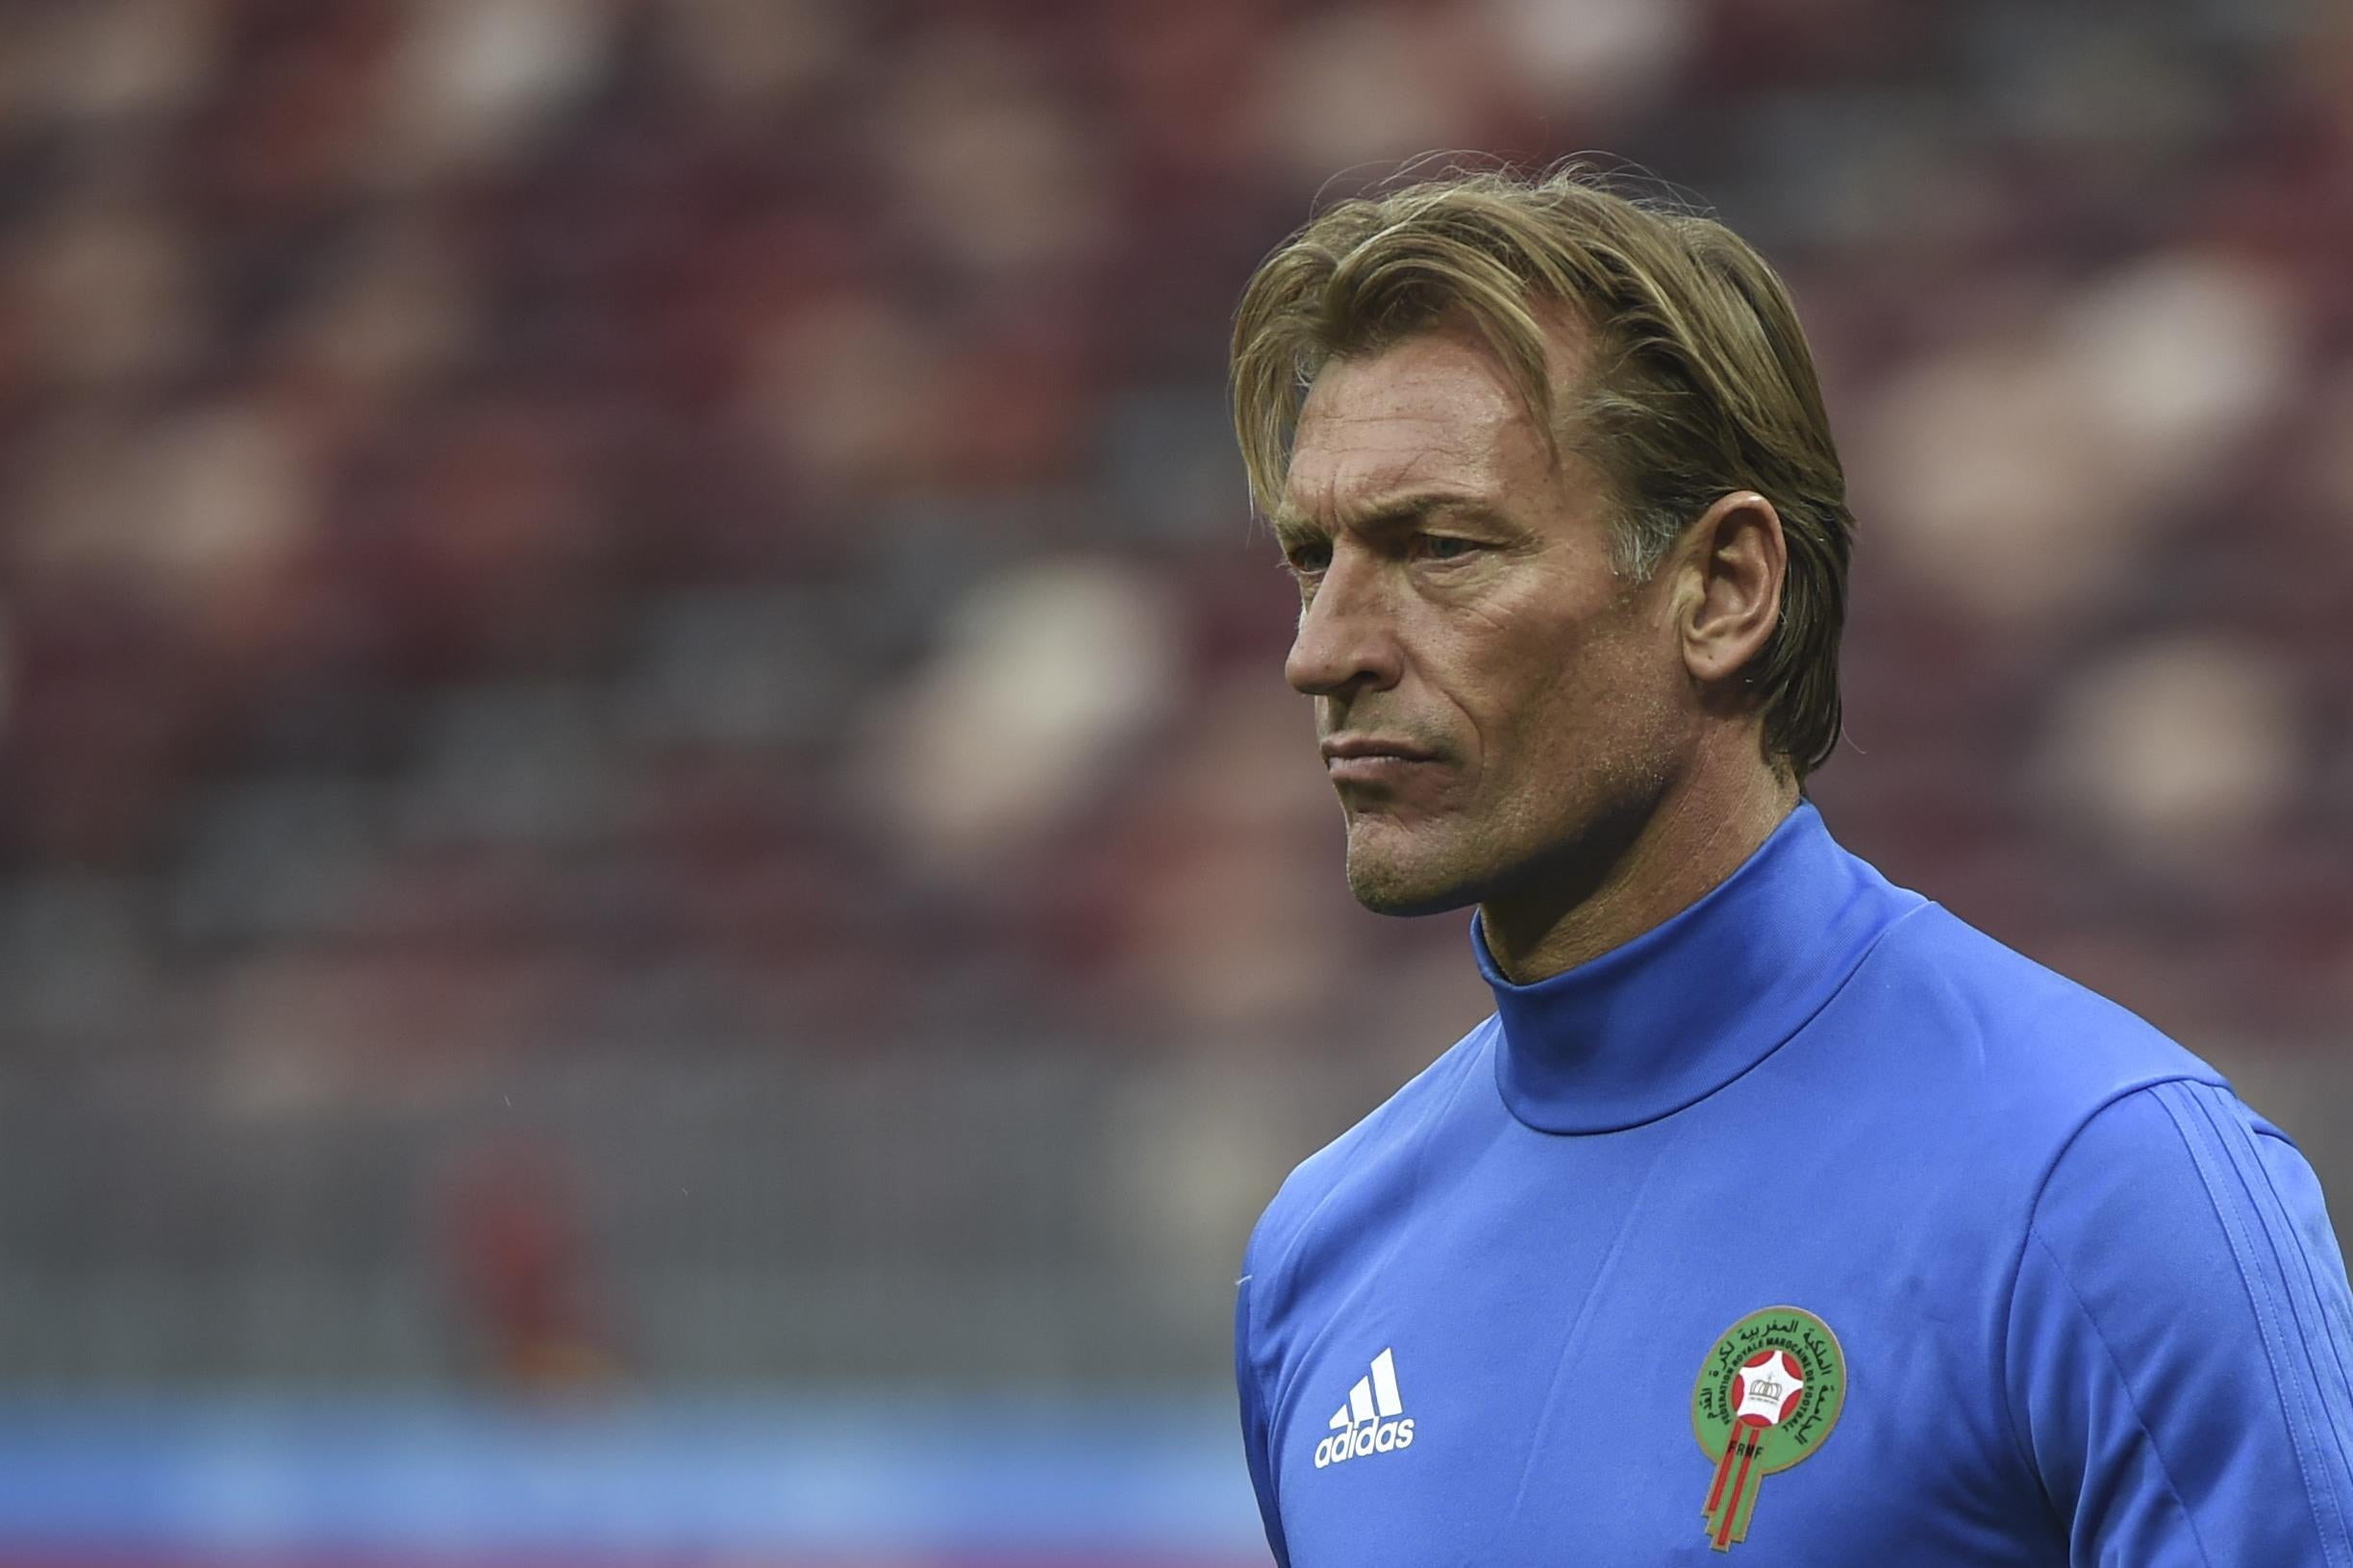 Morocco's French coach Herve Renard leads a training session at the Luzhniki Stadium in Moscow on June 19, 2018, on the eve of the Russia 2018 World Cup Group B football match between Portugal and Morocco. (Photo by Fadel SENNA / AFP)        (Photo credit should read FADEL SENNA/AFP/Getty Images)